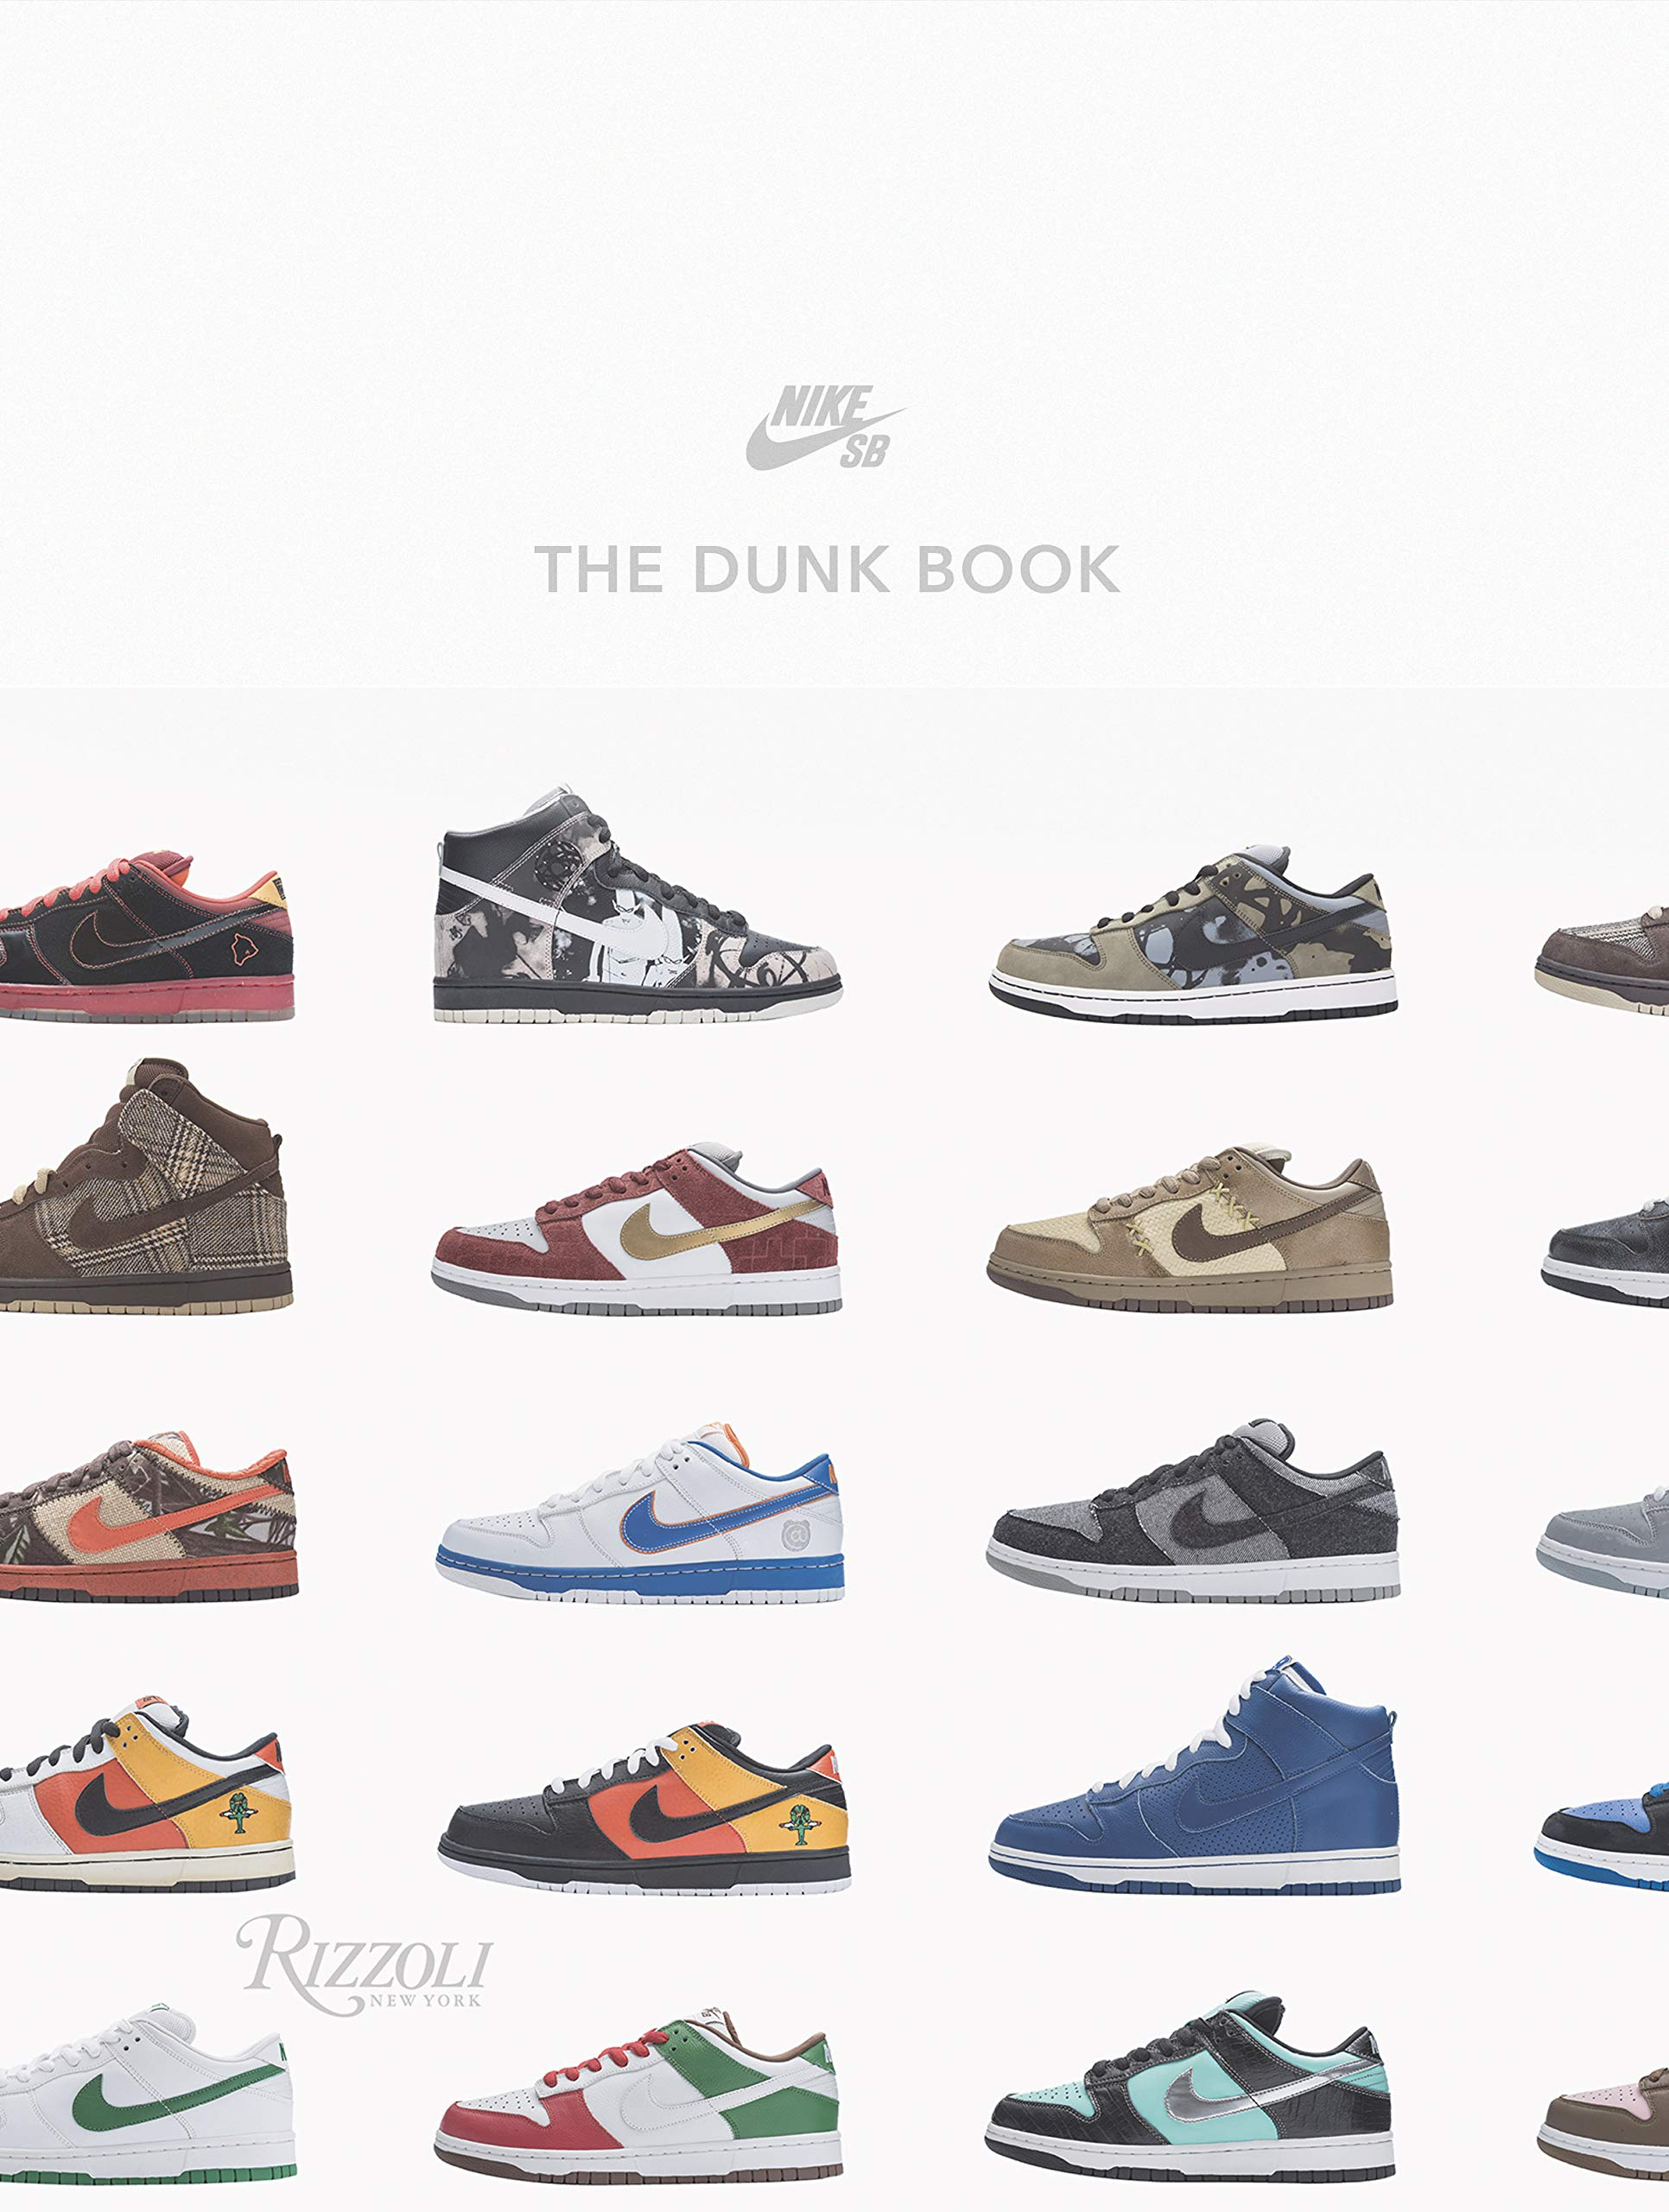 ac0a5c00108c Nike SB  The Dunk Book  Nike SB  9780847866694  Amazon.com  Books